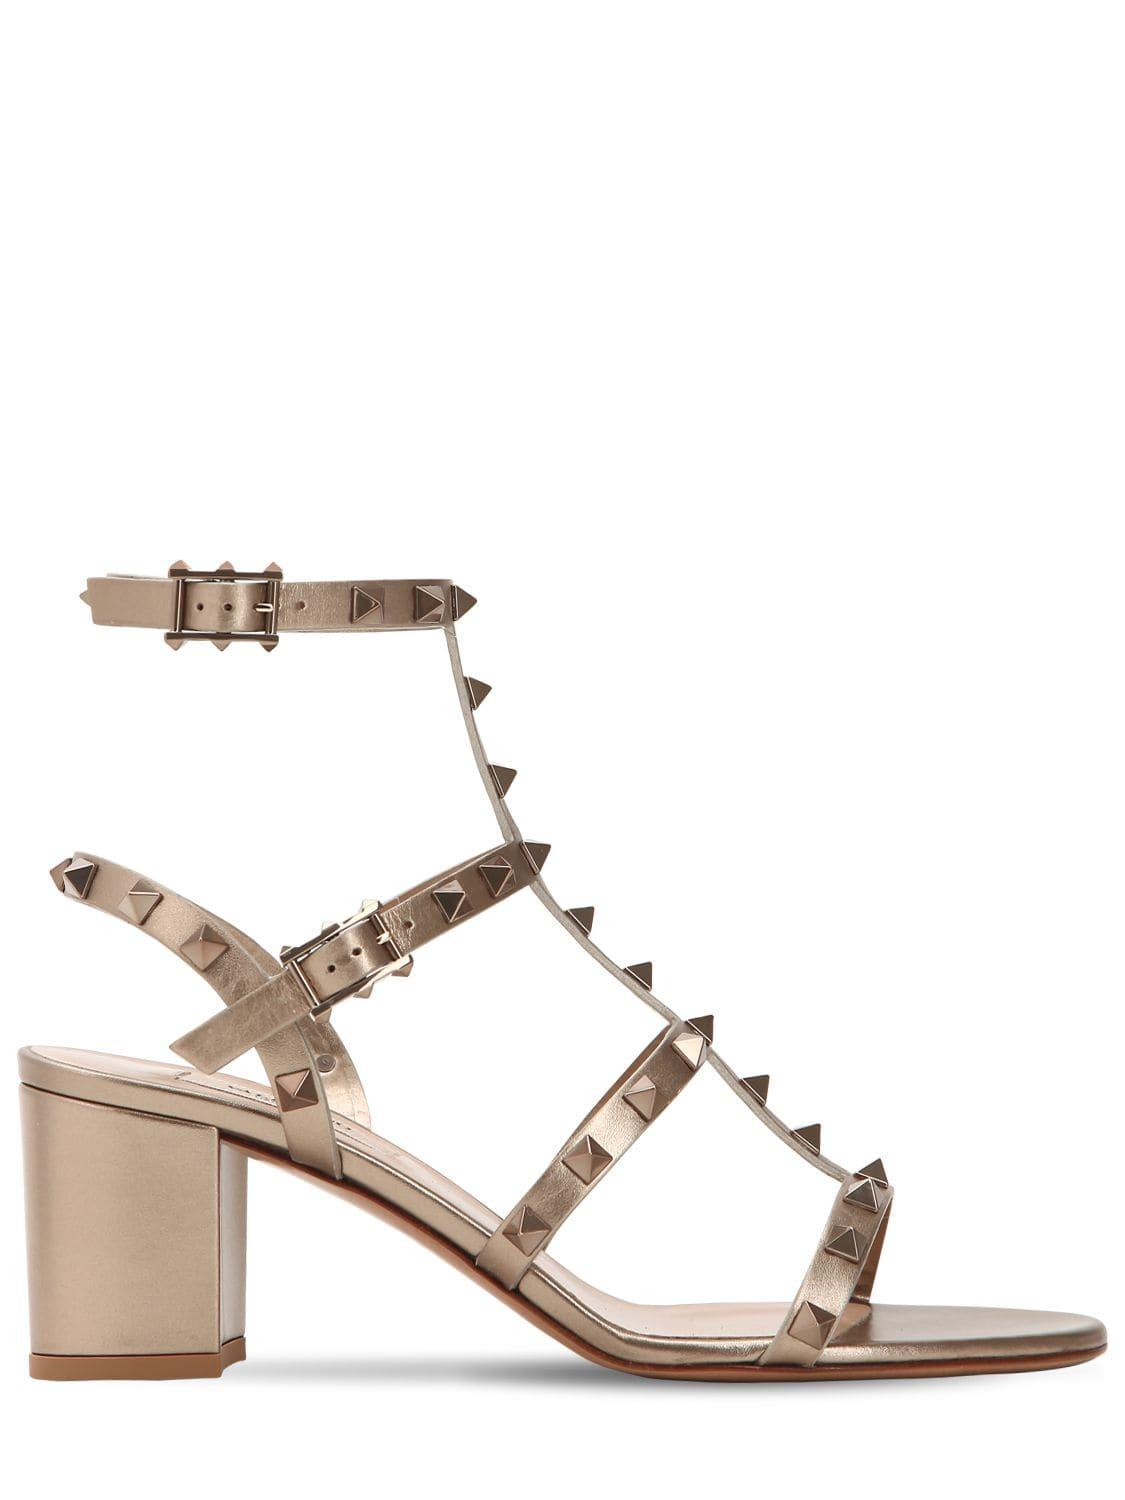 11c2bbe94cb Lyst - Valentino 60mm Rockstud Metallic Leather Sandals in Metallic